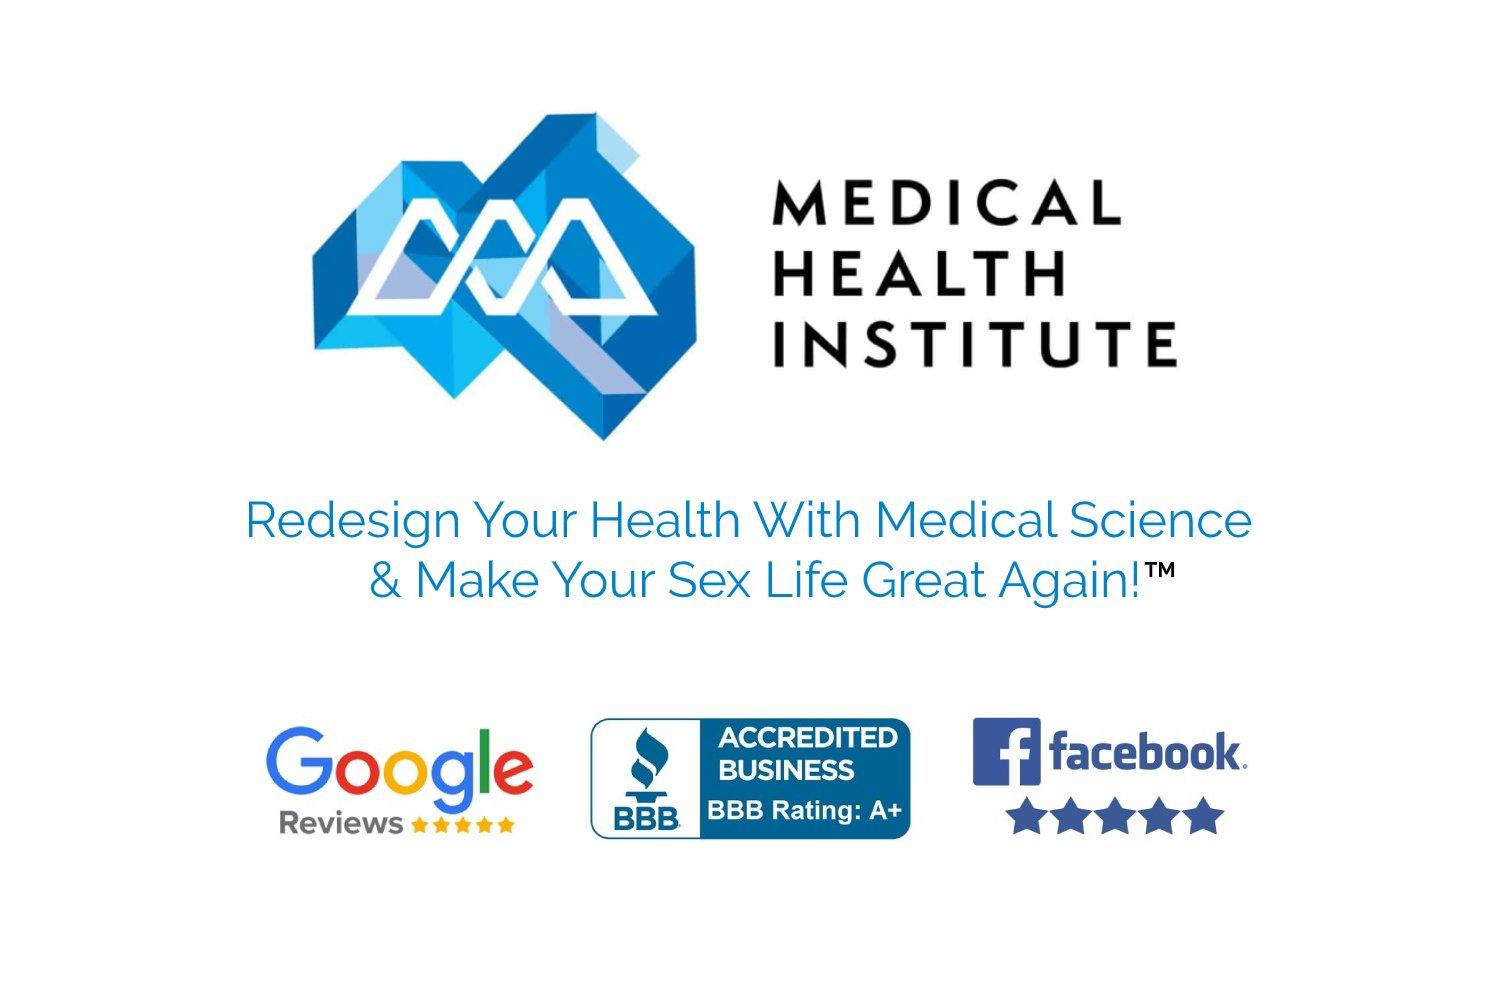 Redesign Your Health With Medical Science